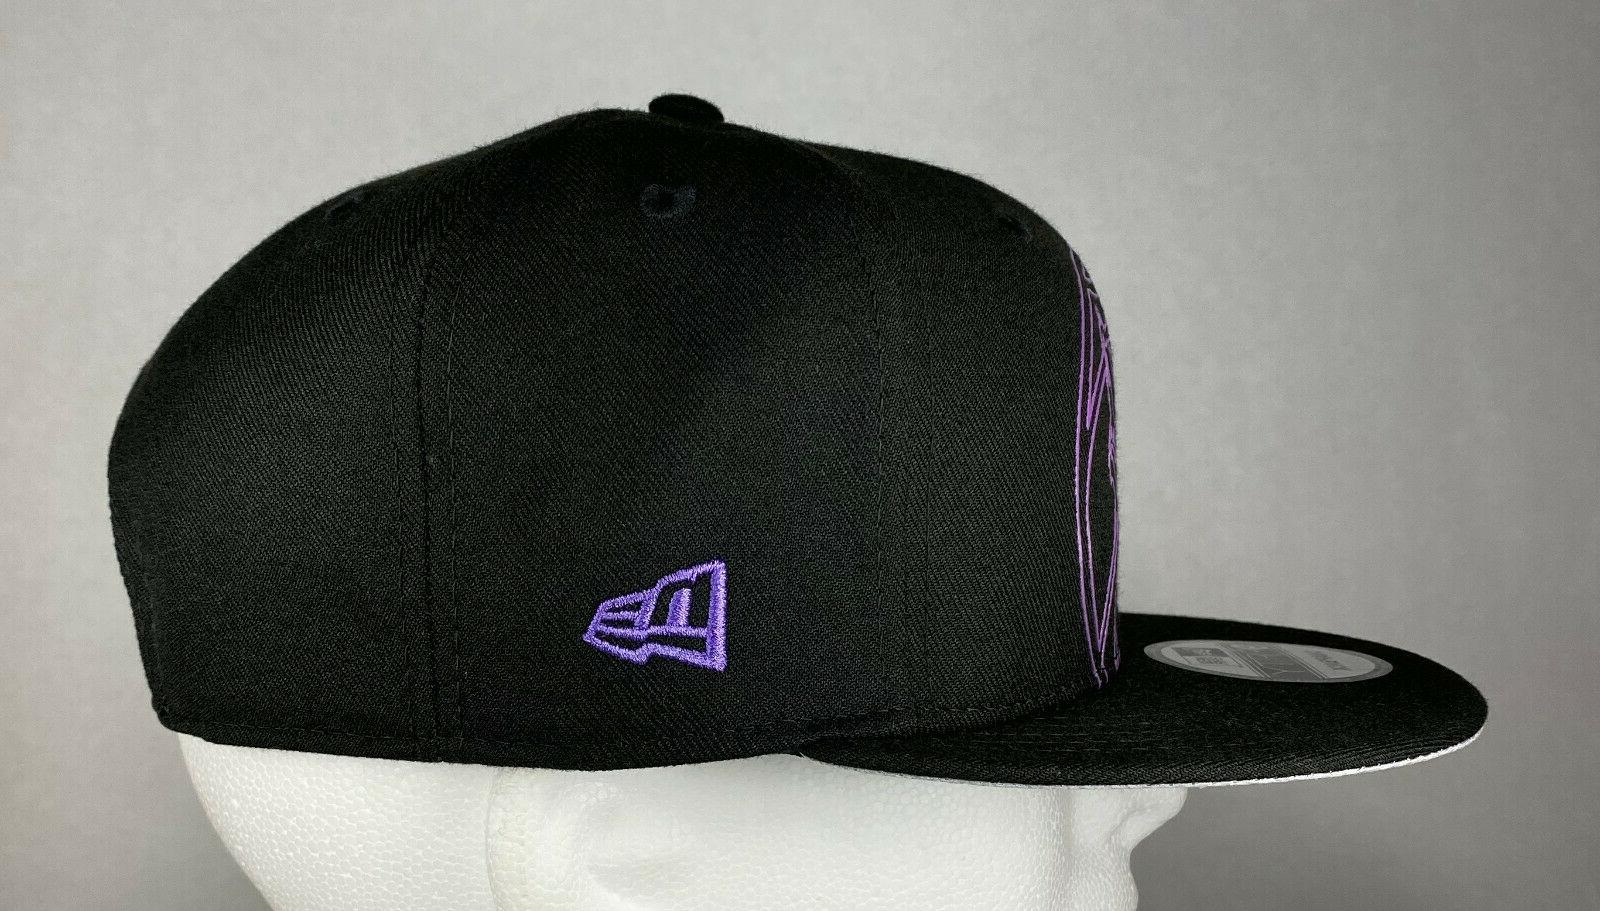 New Timberwolves 9FIFTY Snapback Hat, New